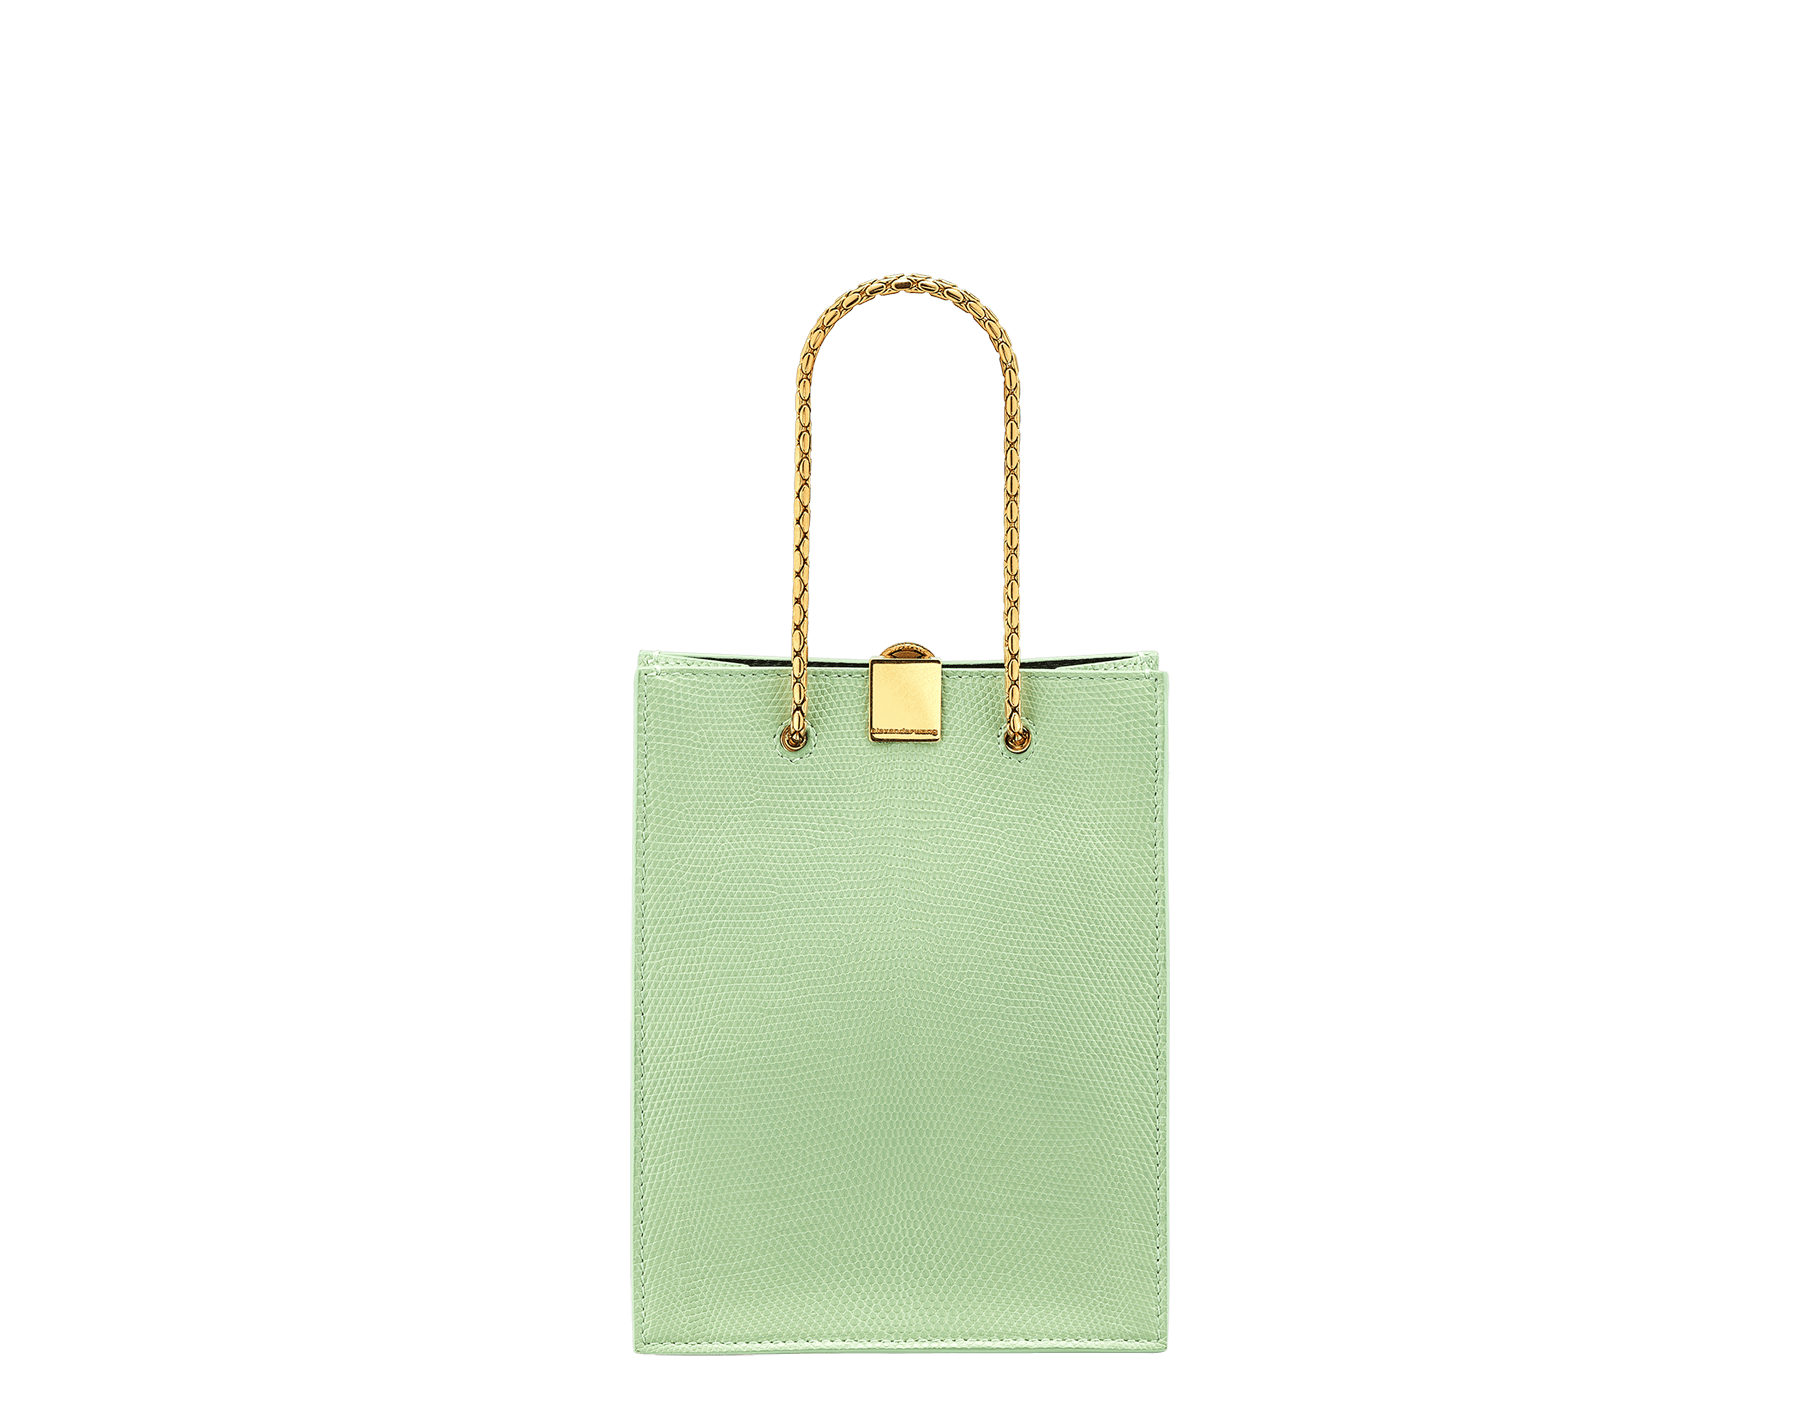 Alexander Wang x Bvlgari mini shopping tote bag in mint lizard skin and black calf leather. New Serpenti head closure in antique gold plated brass with tempting red enamel eyes. Limited edition. 288727 image 3